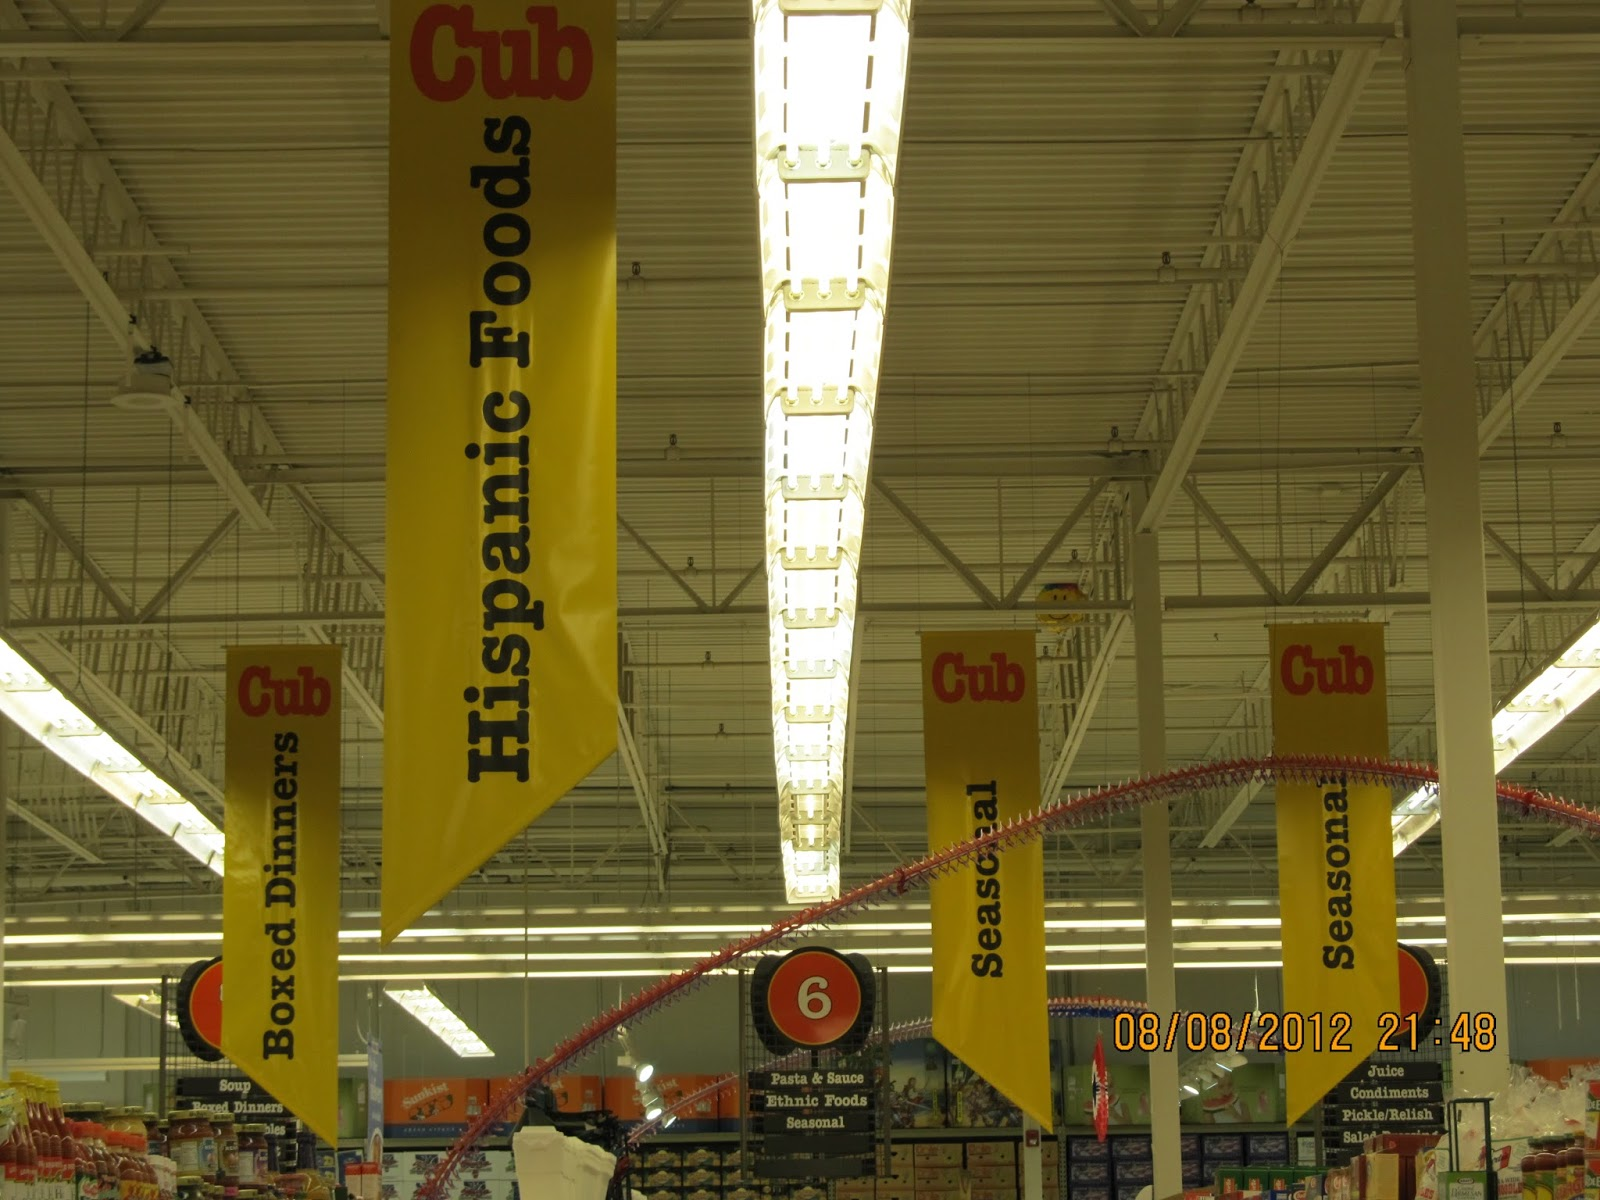 Trip to the Mall: FINAL CALLING: Last Cub Foods in Illinois!